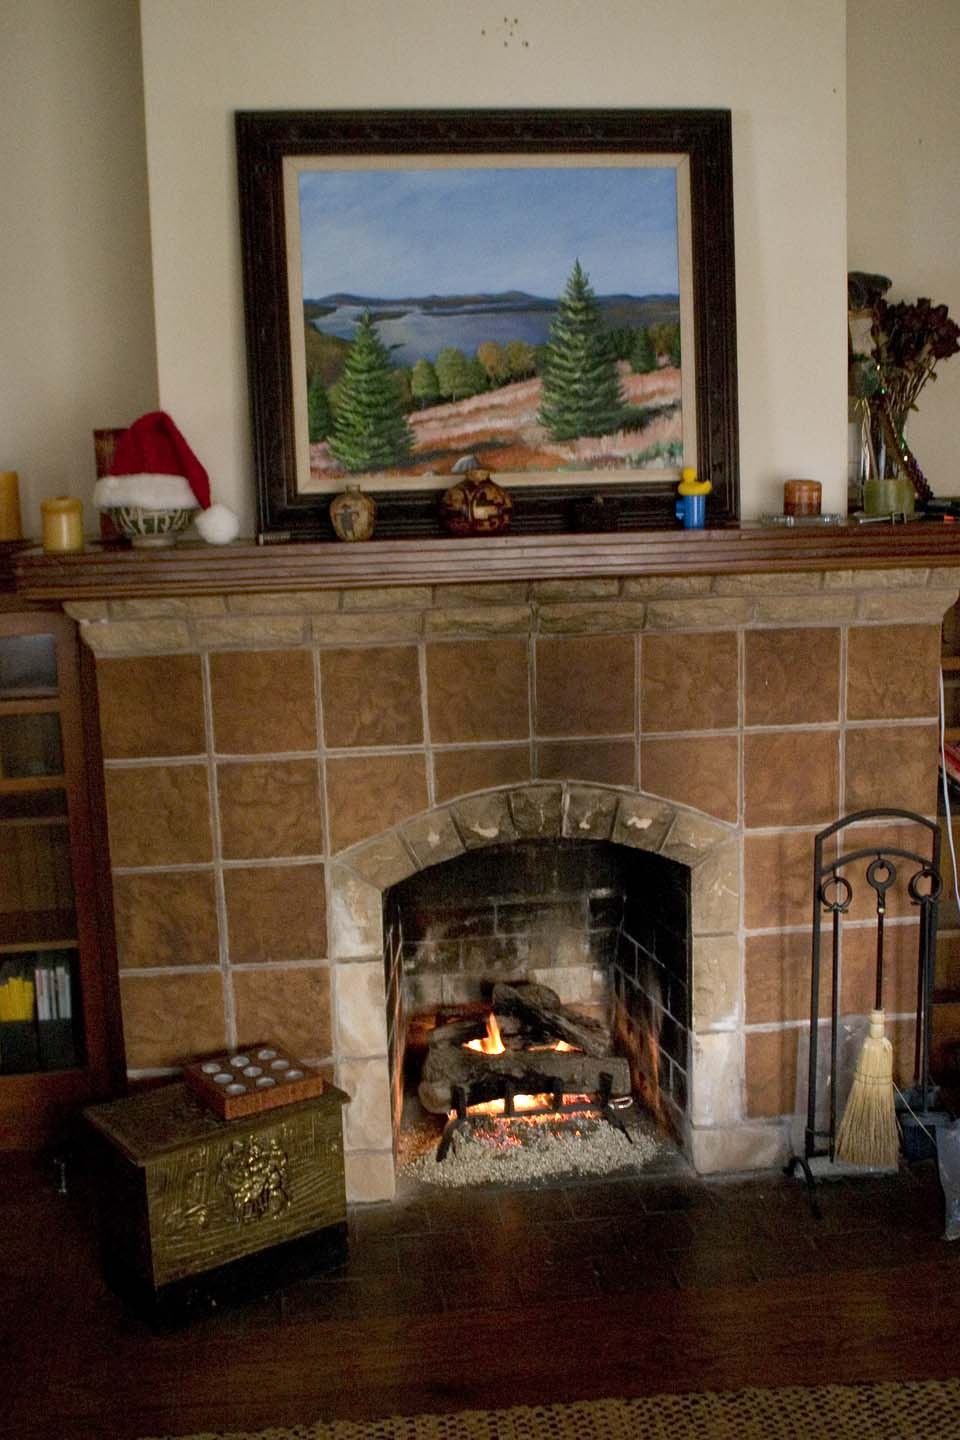 Fireplace with gas logs ablaze